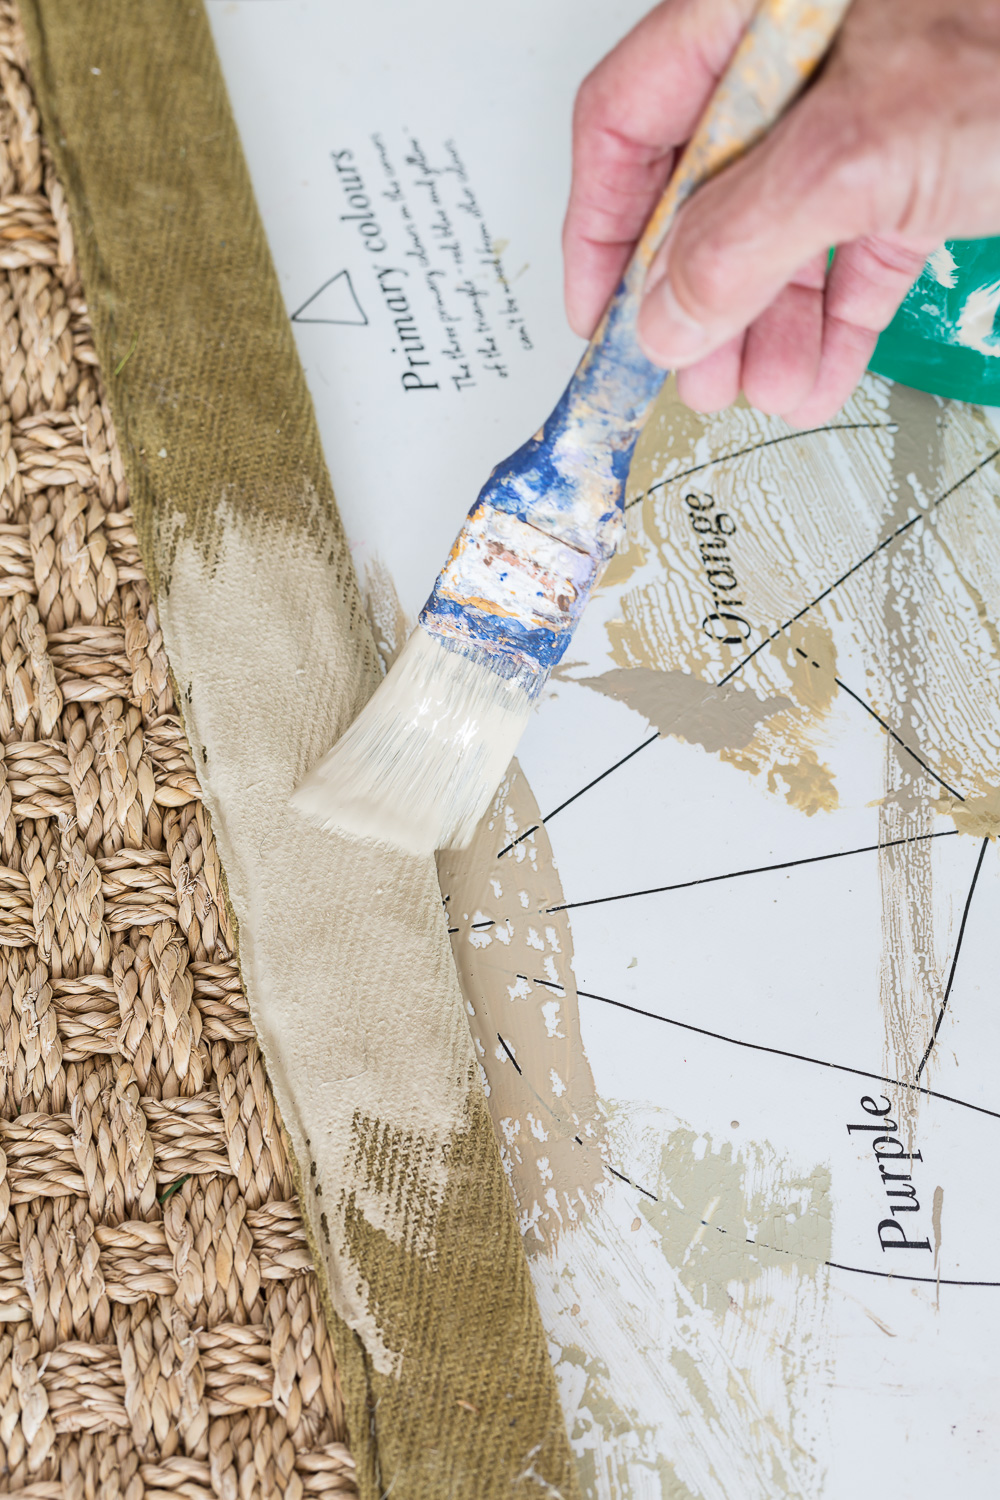 How to paint the border on a rug a new color using chalk paint.